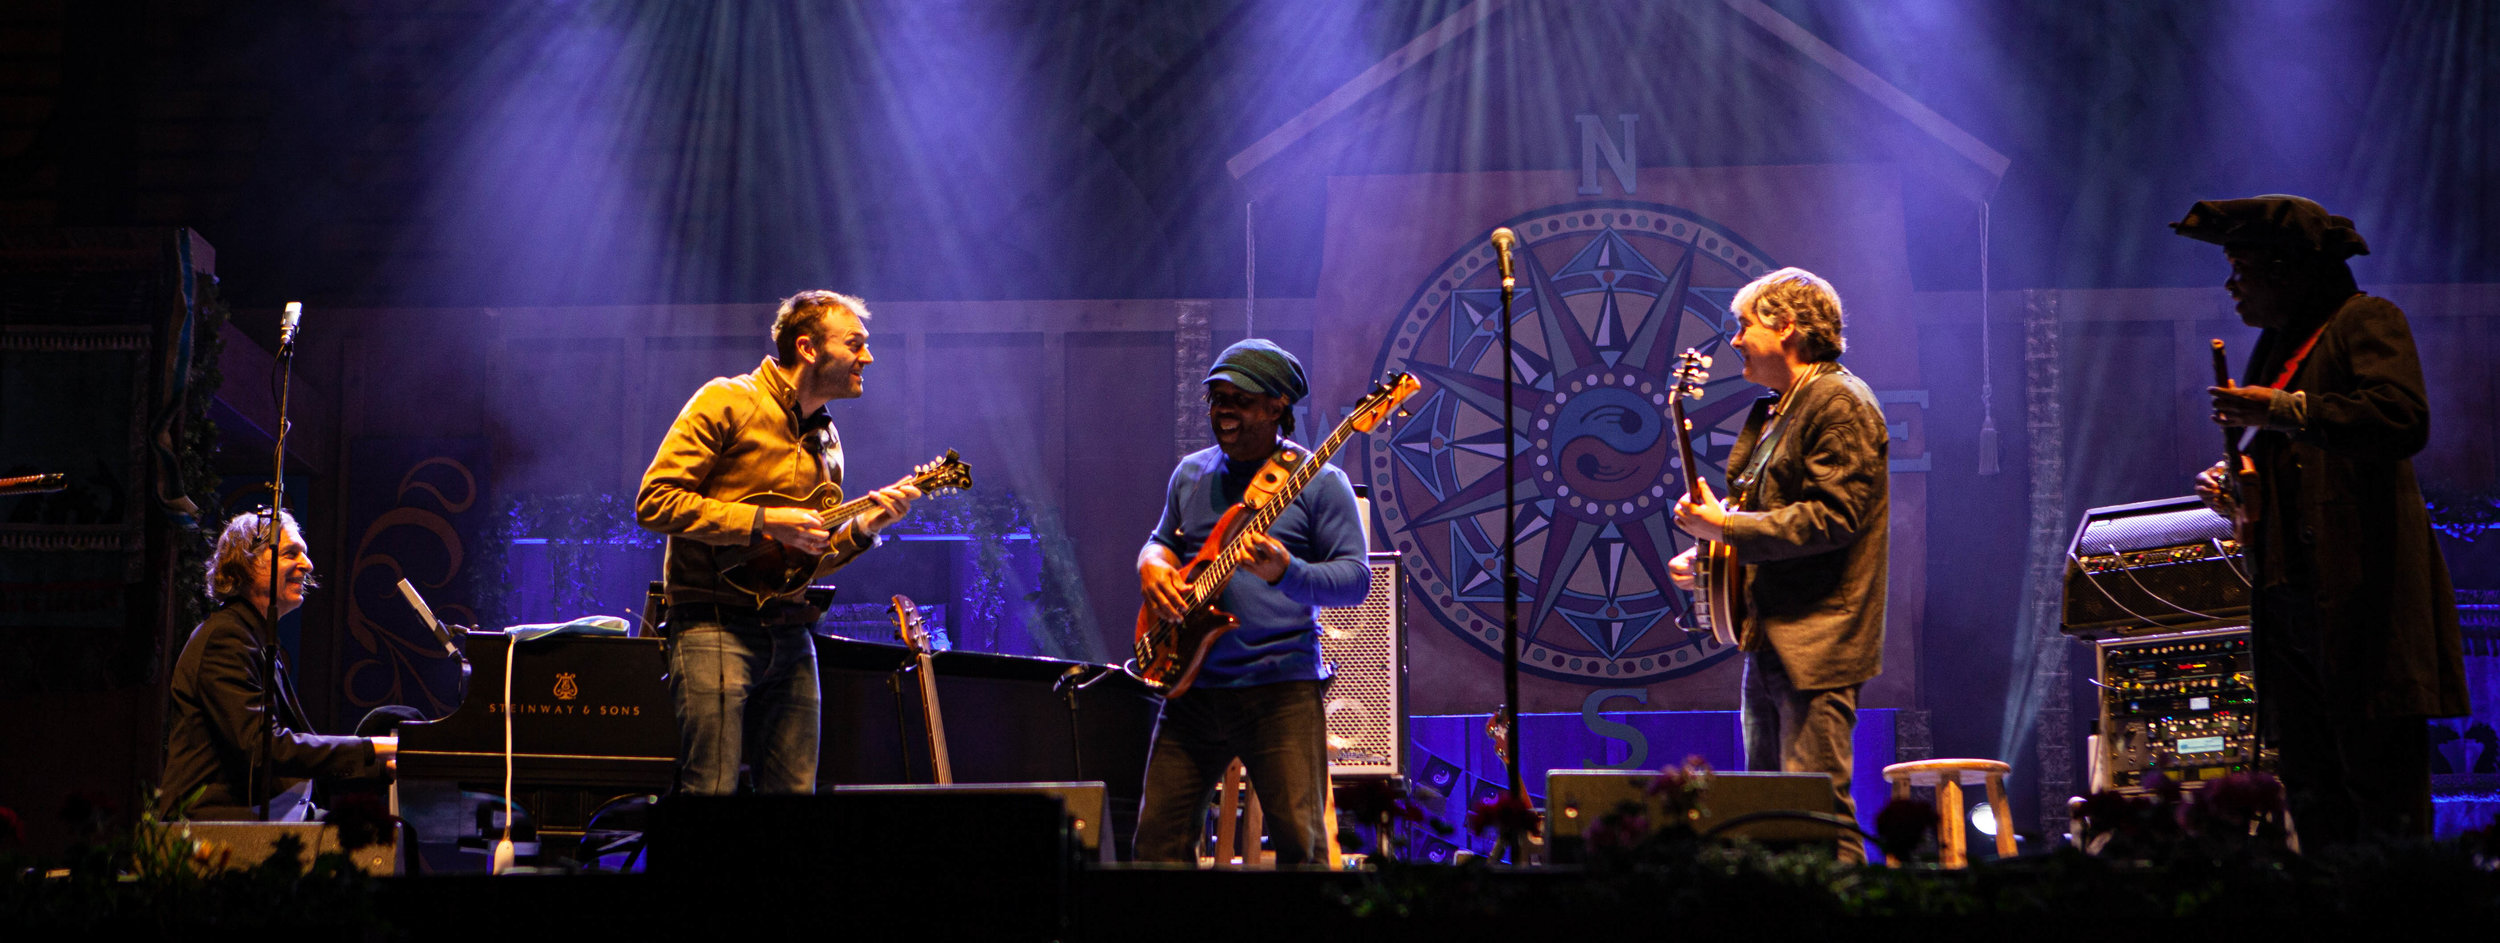 Bela Fleck & The Flecktones.